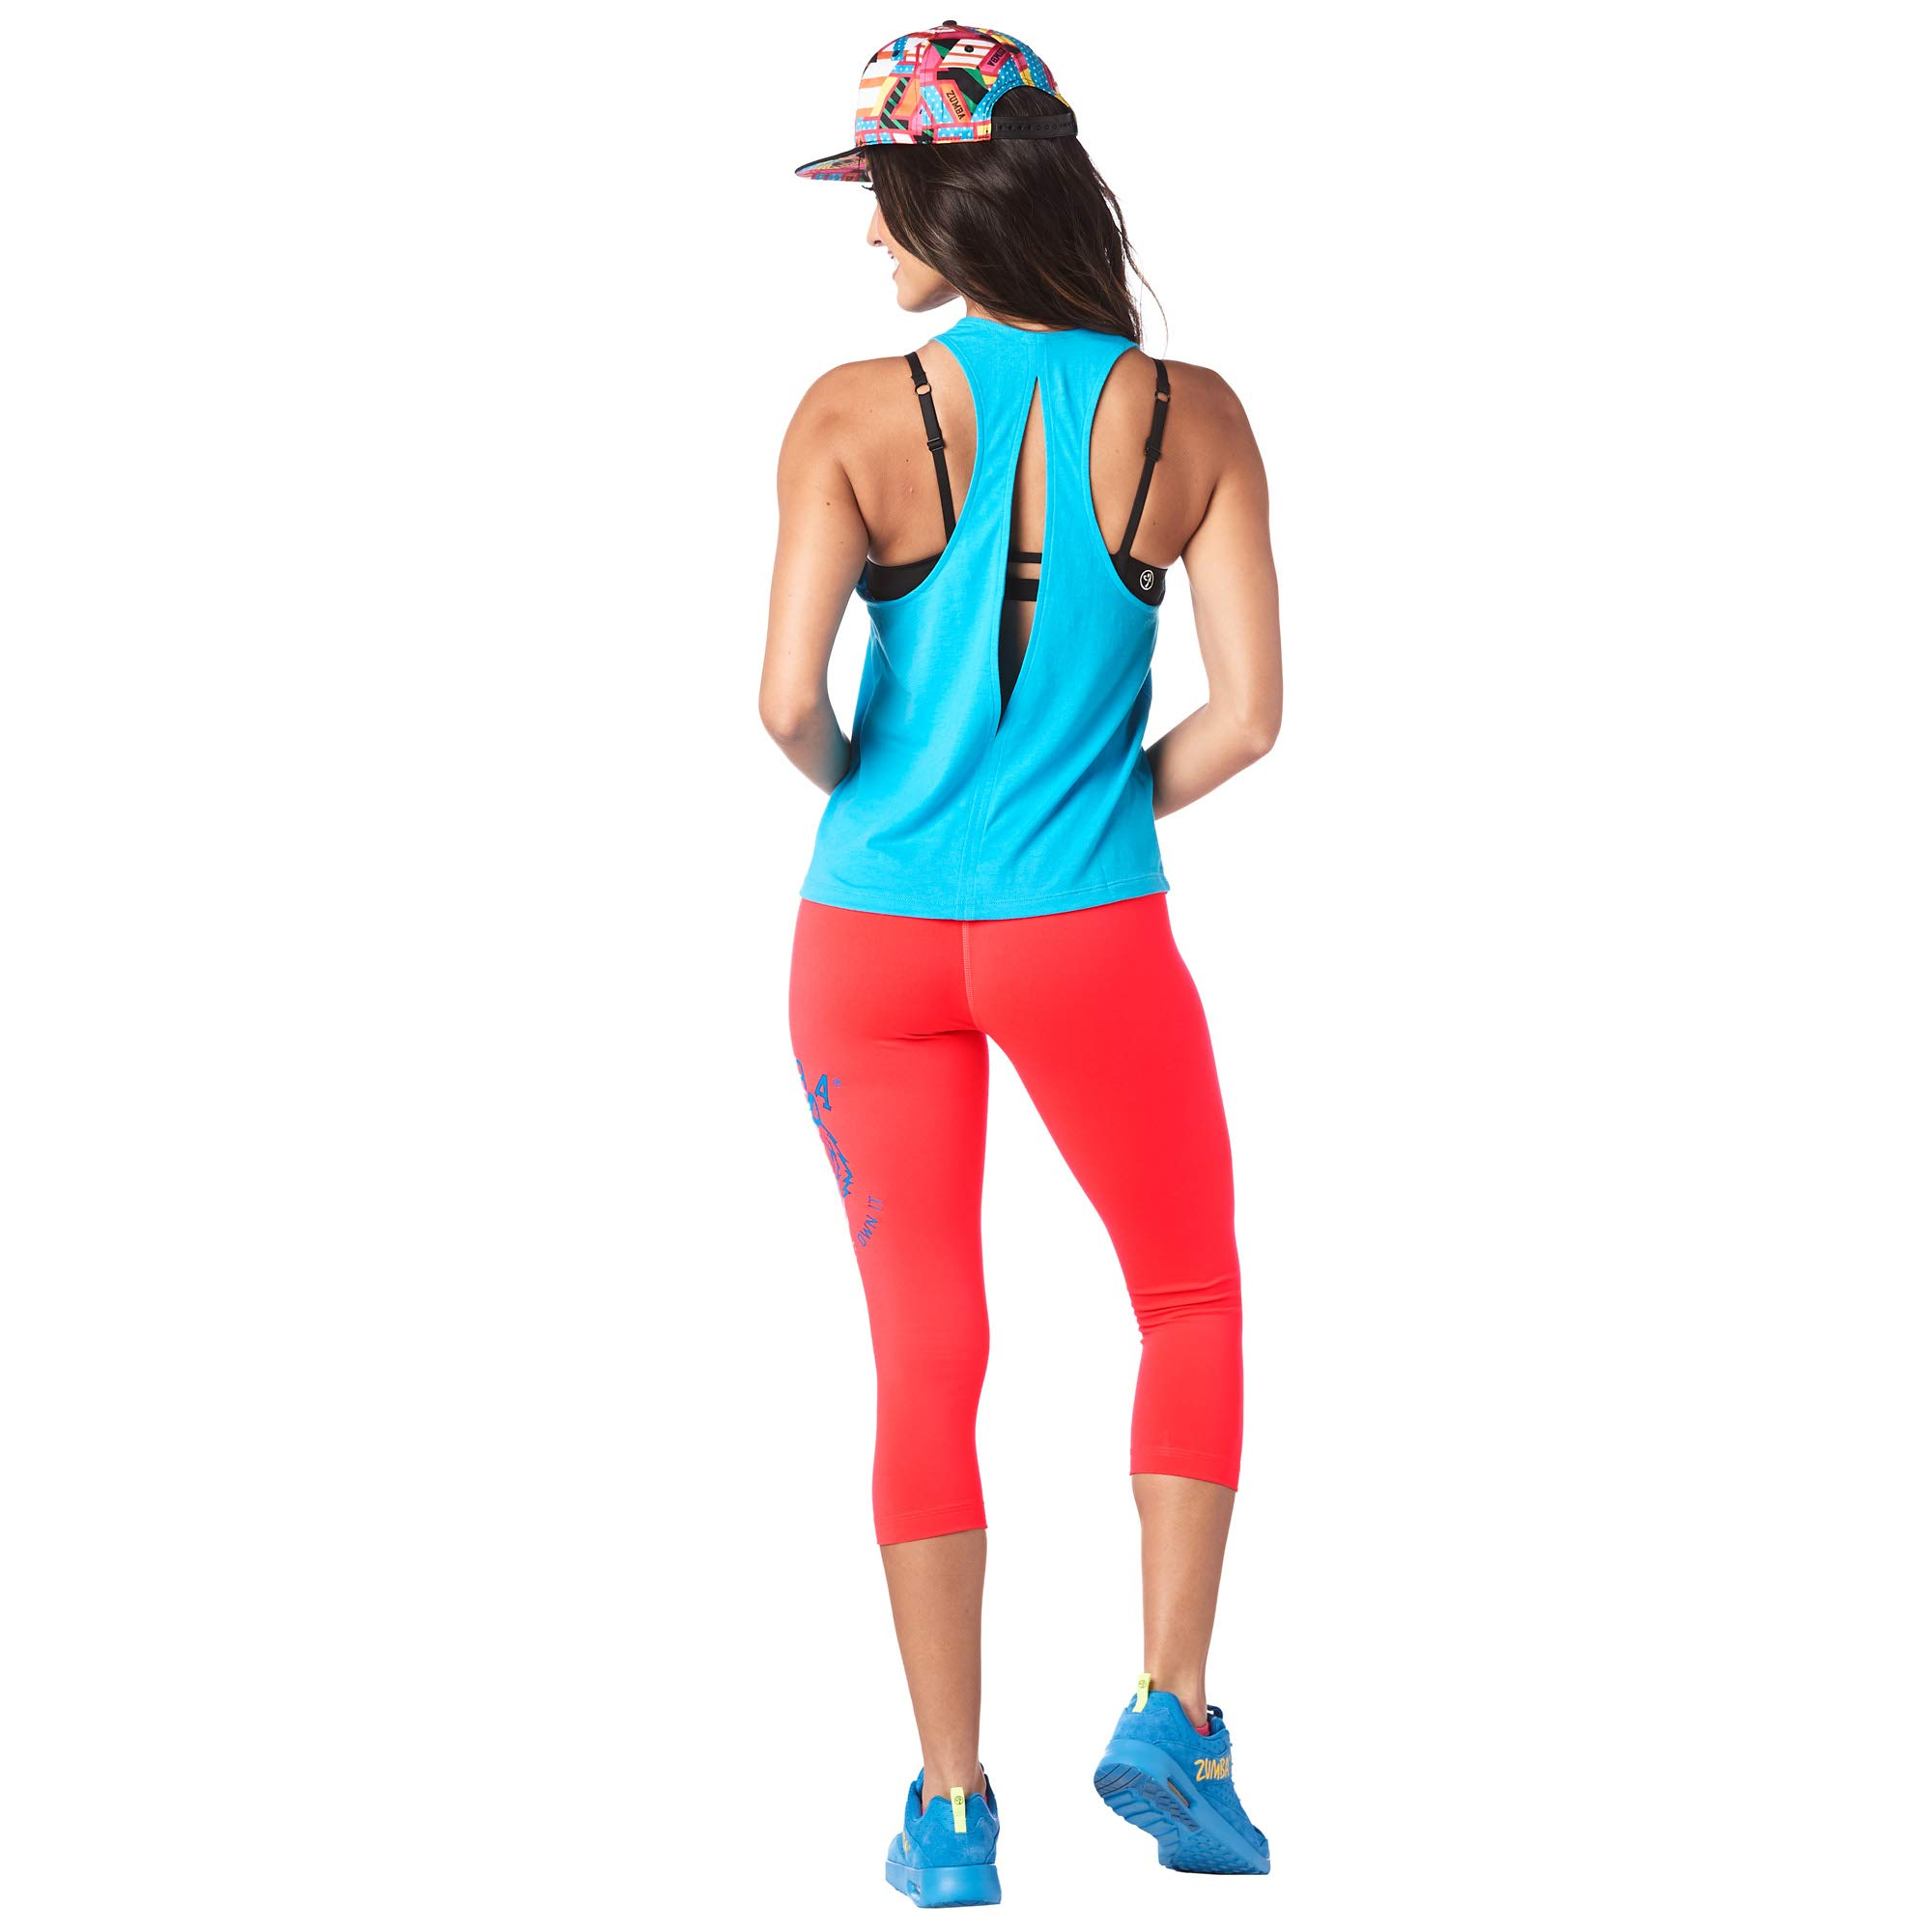 d4e45f6743 Zumba Women's Sexy Open Back Breathable Workout Tank Top, Bangin' Blue,  X-Small